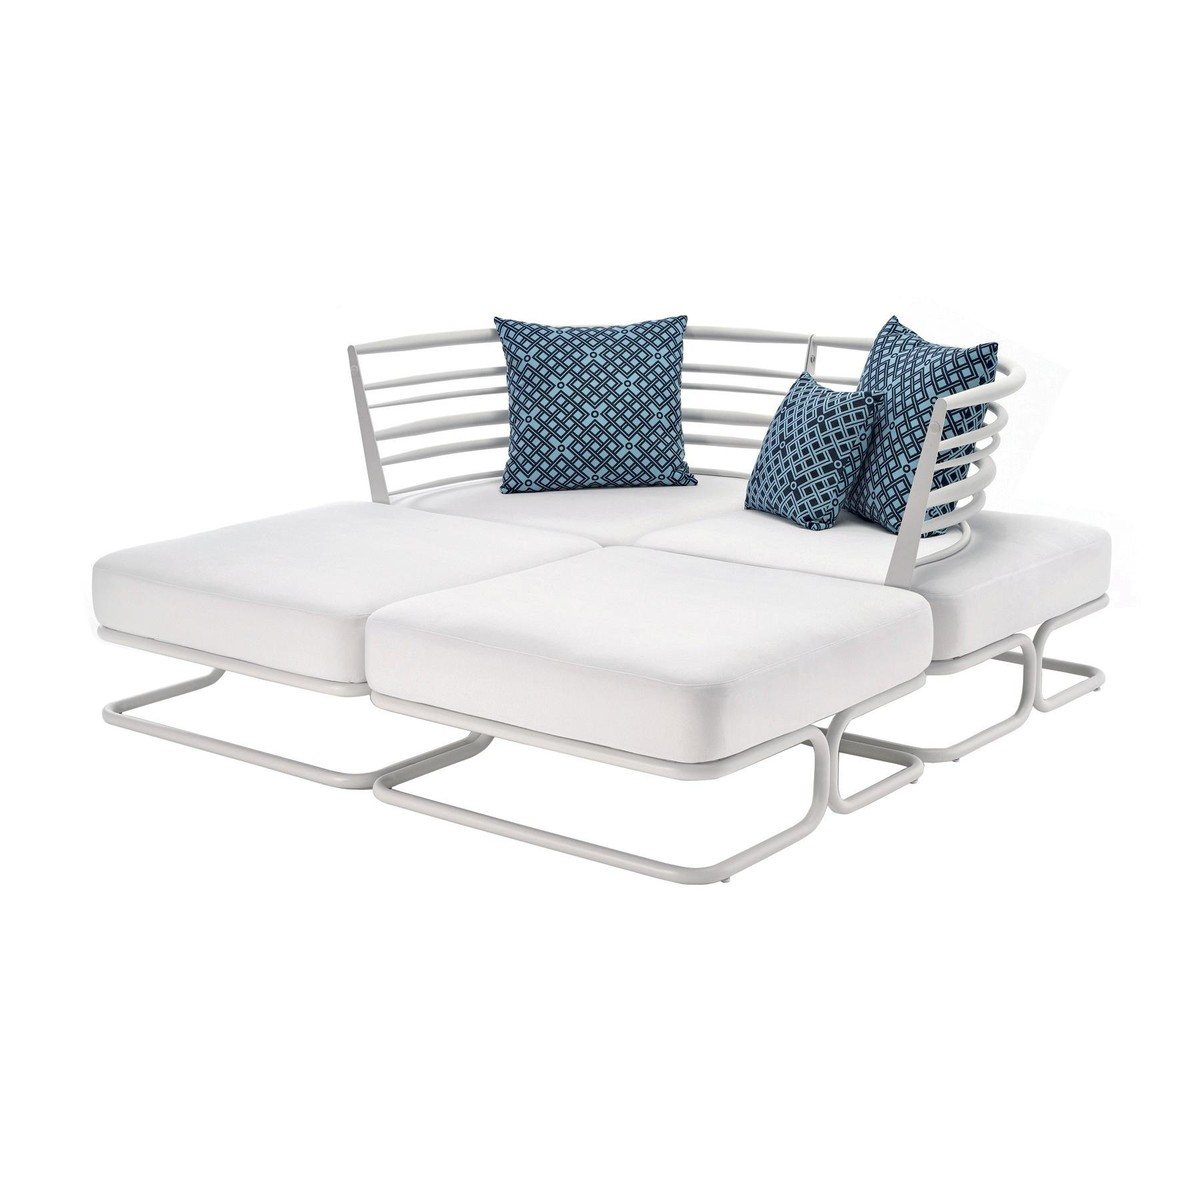 Daybed Holz Daybed Holz Amazing Himmelbett Cubic Mit Baldachin